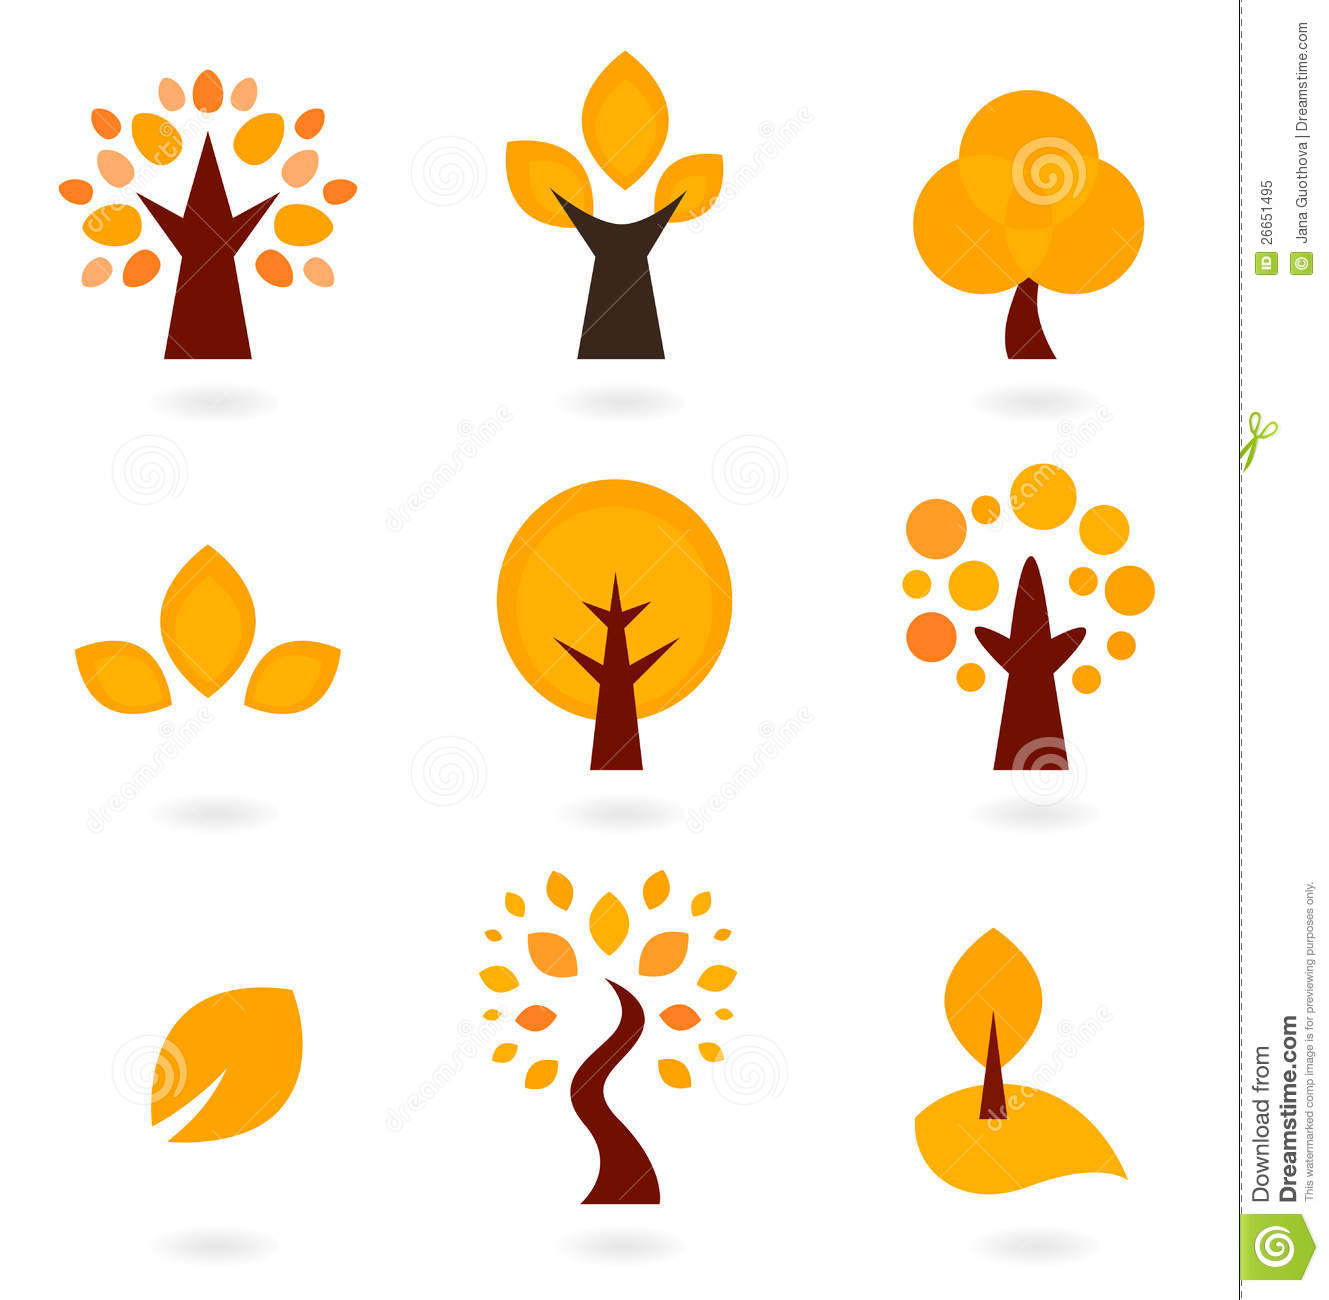 tree clipart wallpaper #3